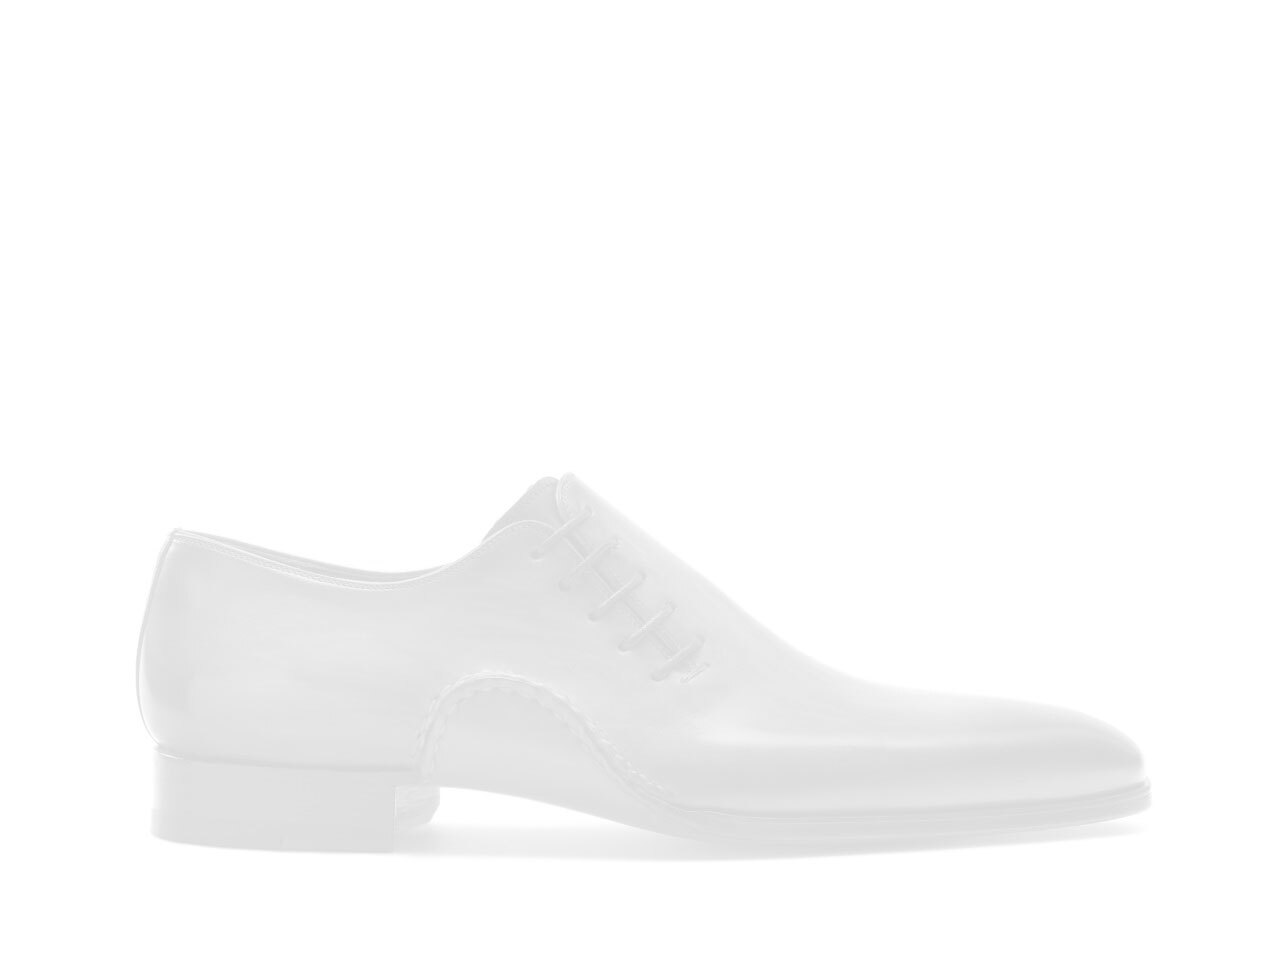 Sole of the Magnanni Nerja Musgo Men's Sneakers